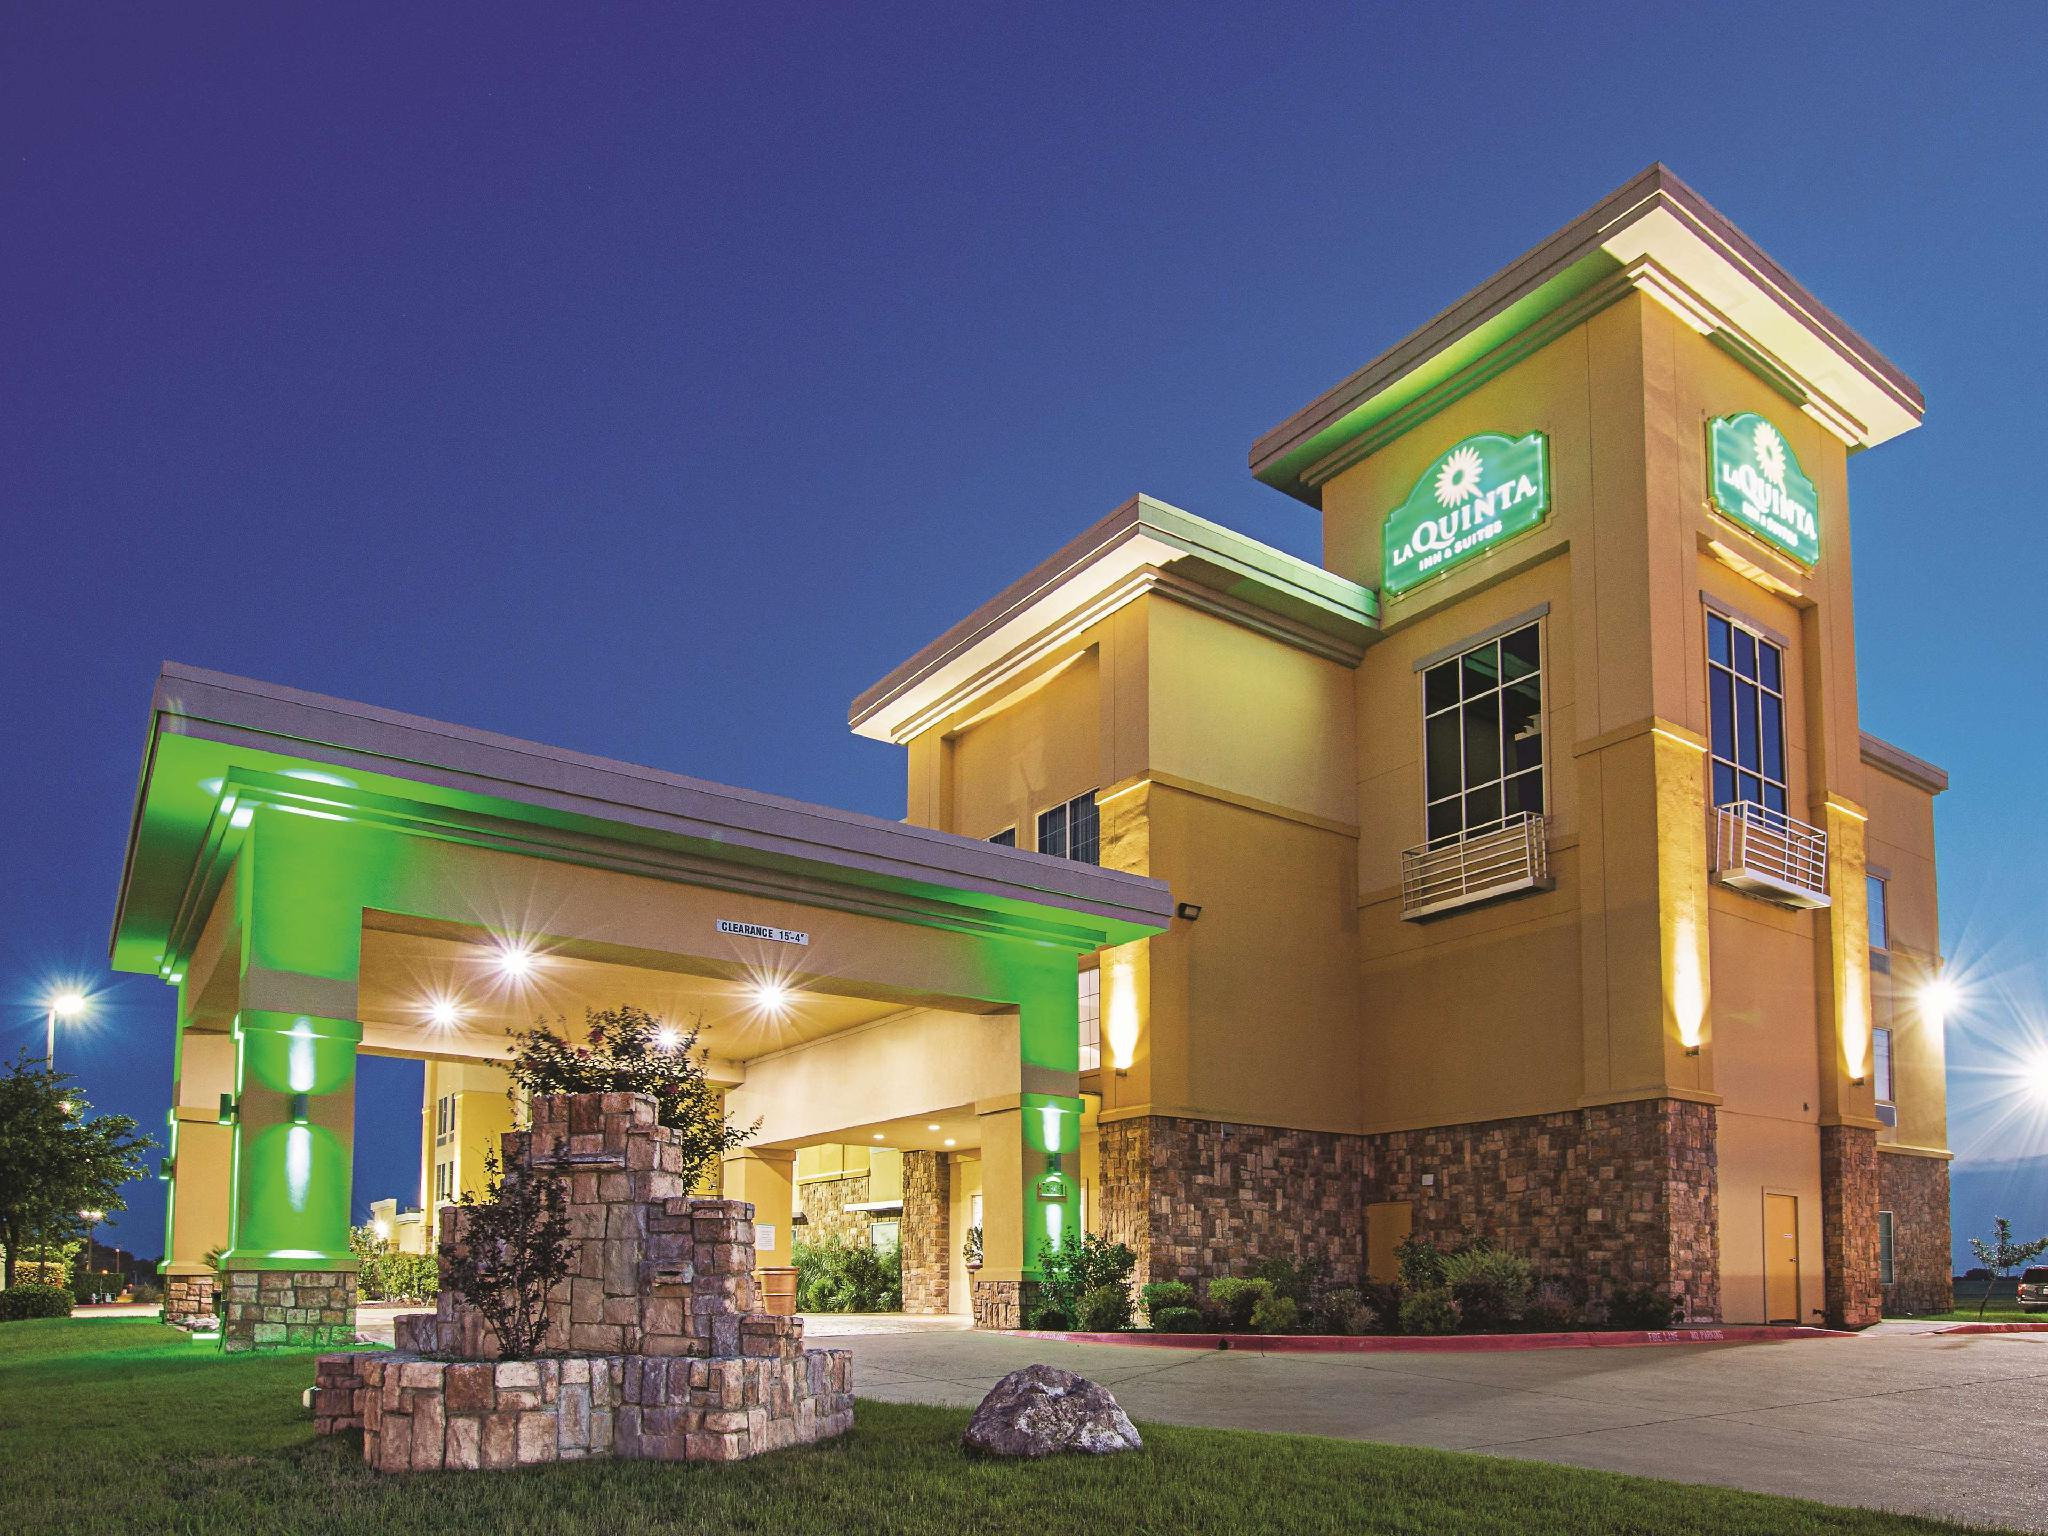 La Quinta Inn And Suites By Wyndham Ft. Worth   Forest Hill TX